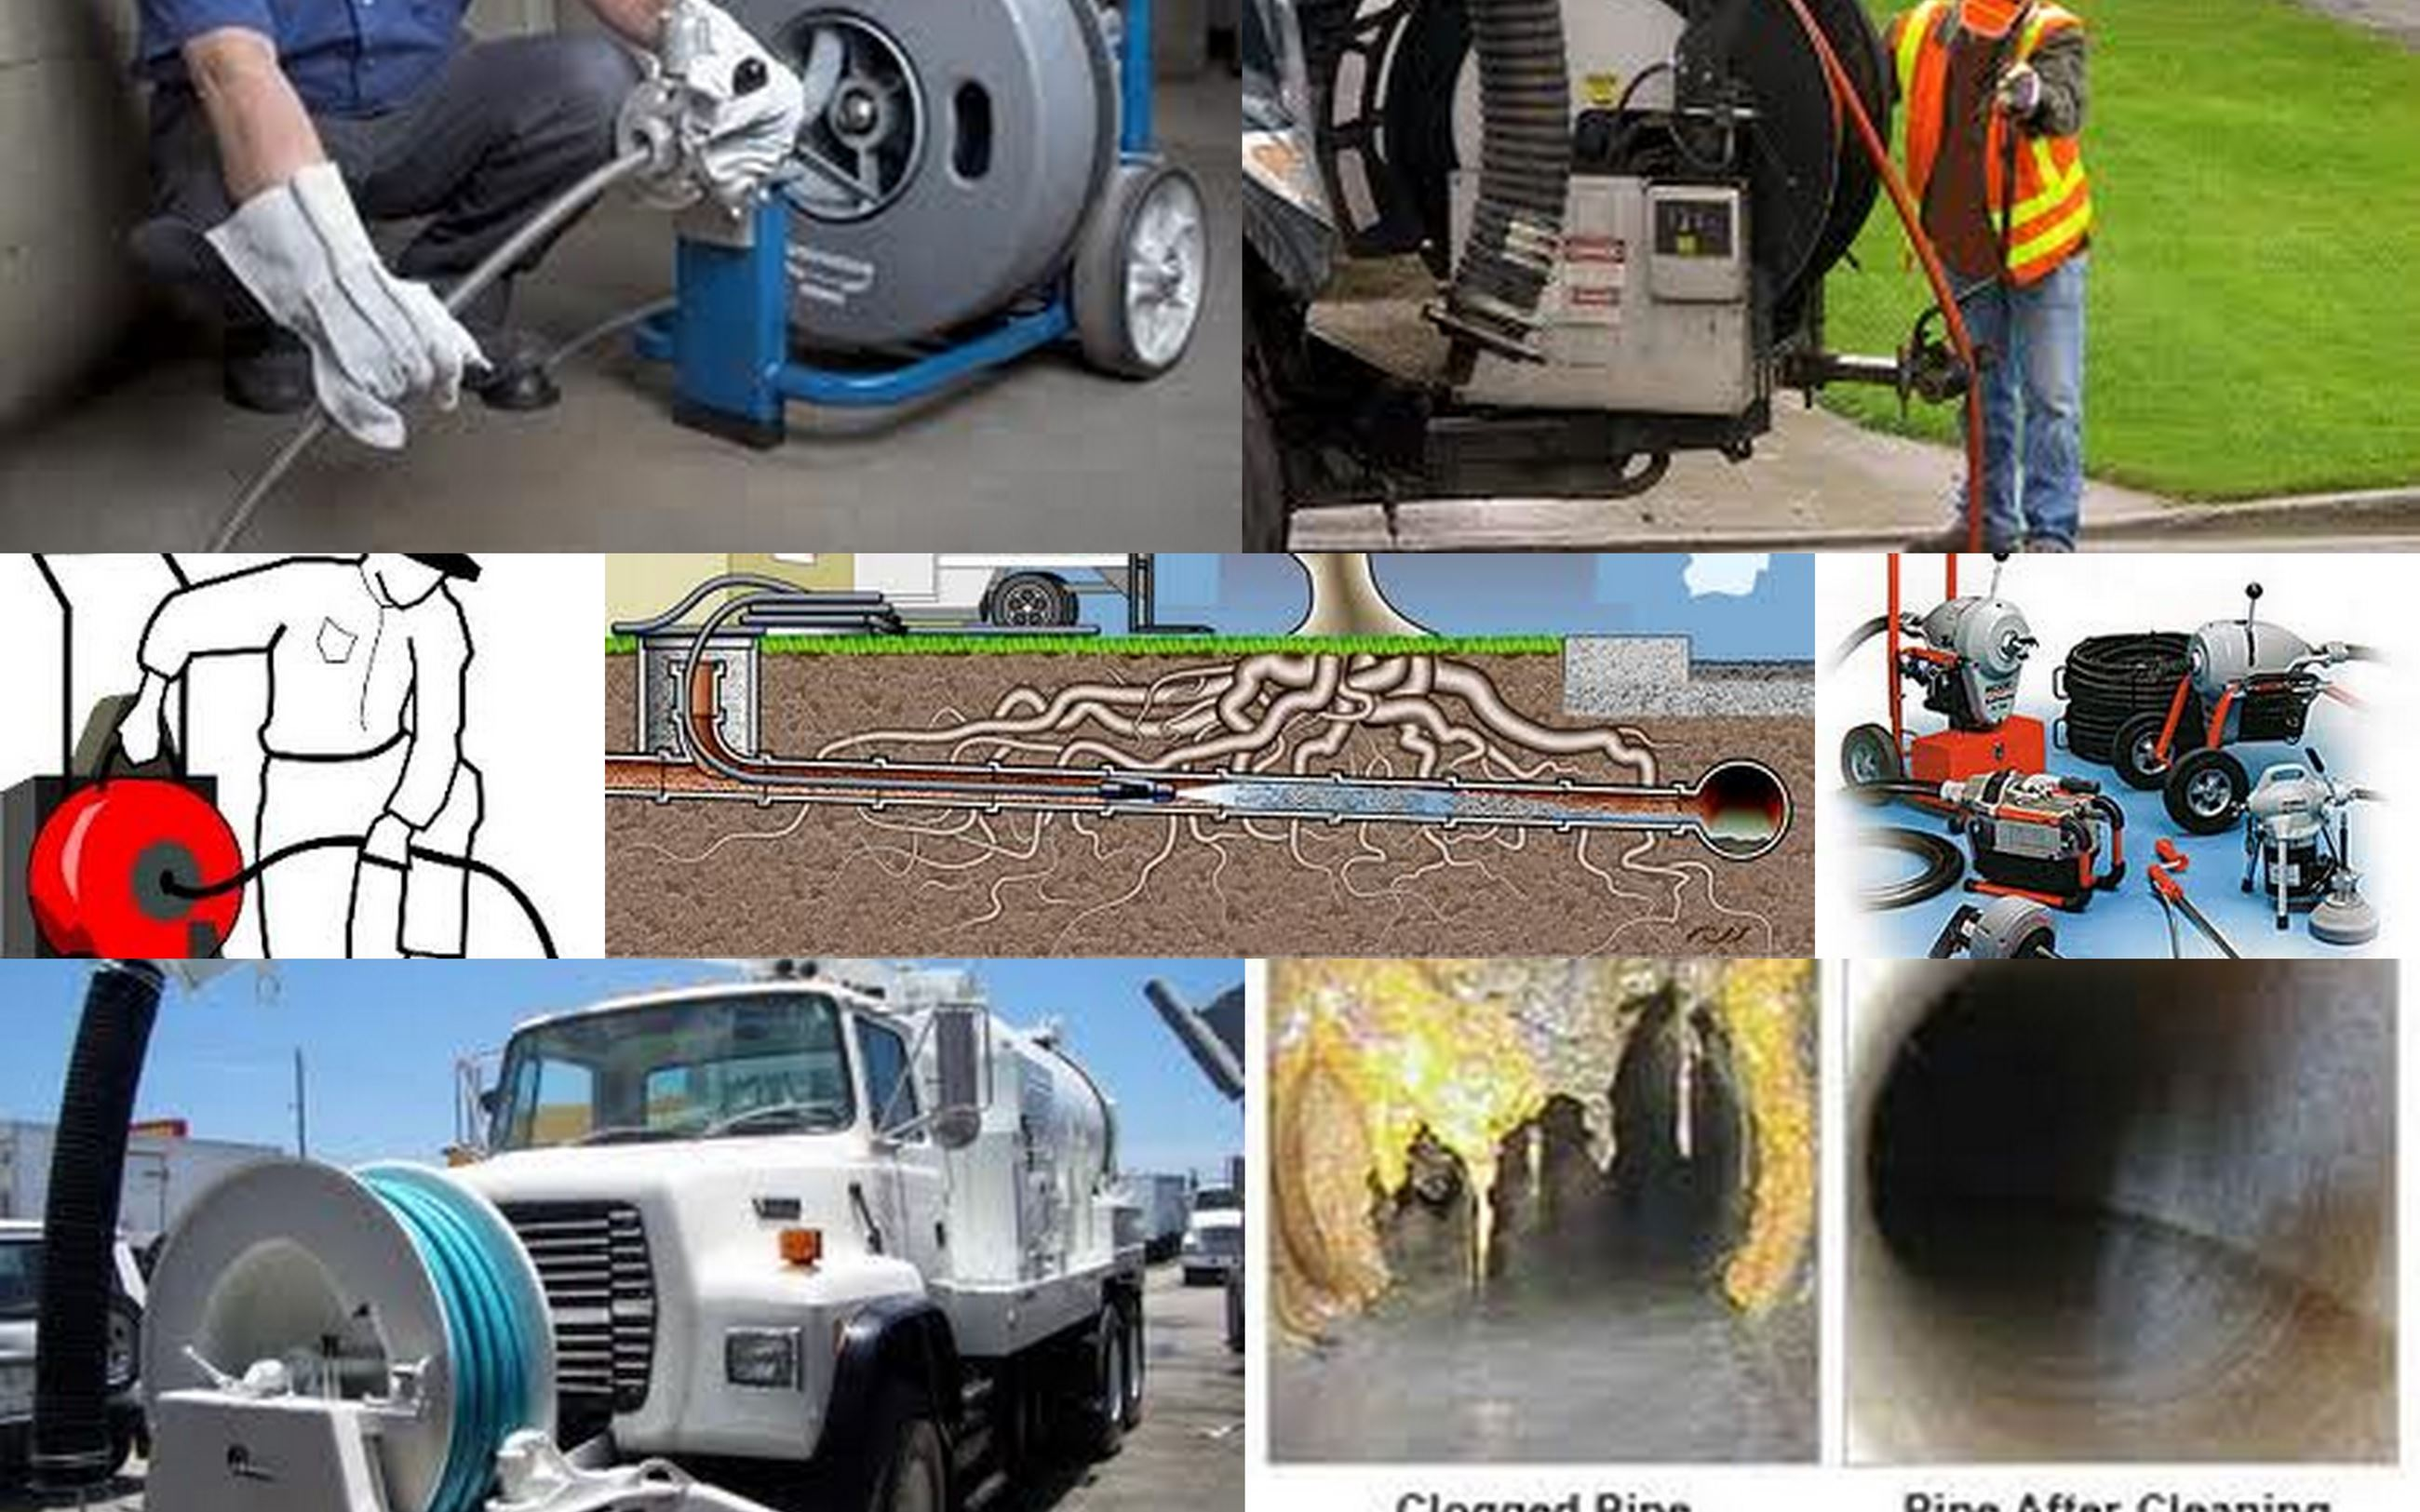 Sewer Cleaning Collage